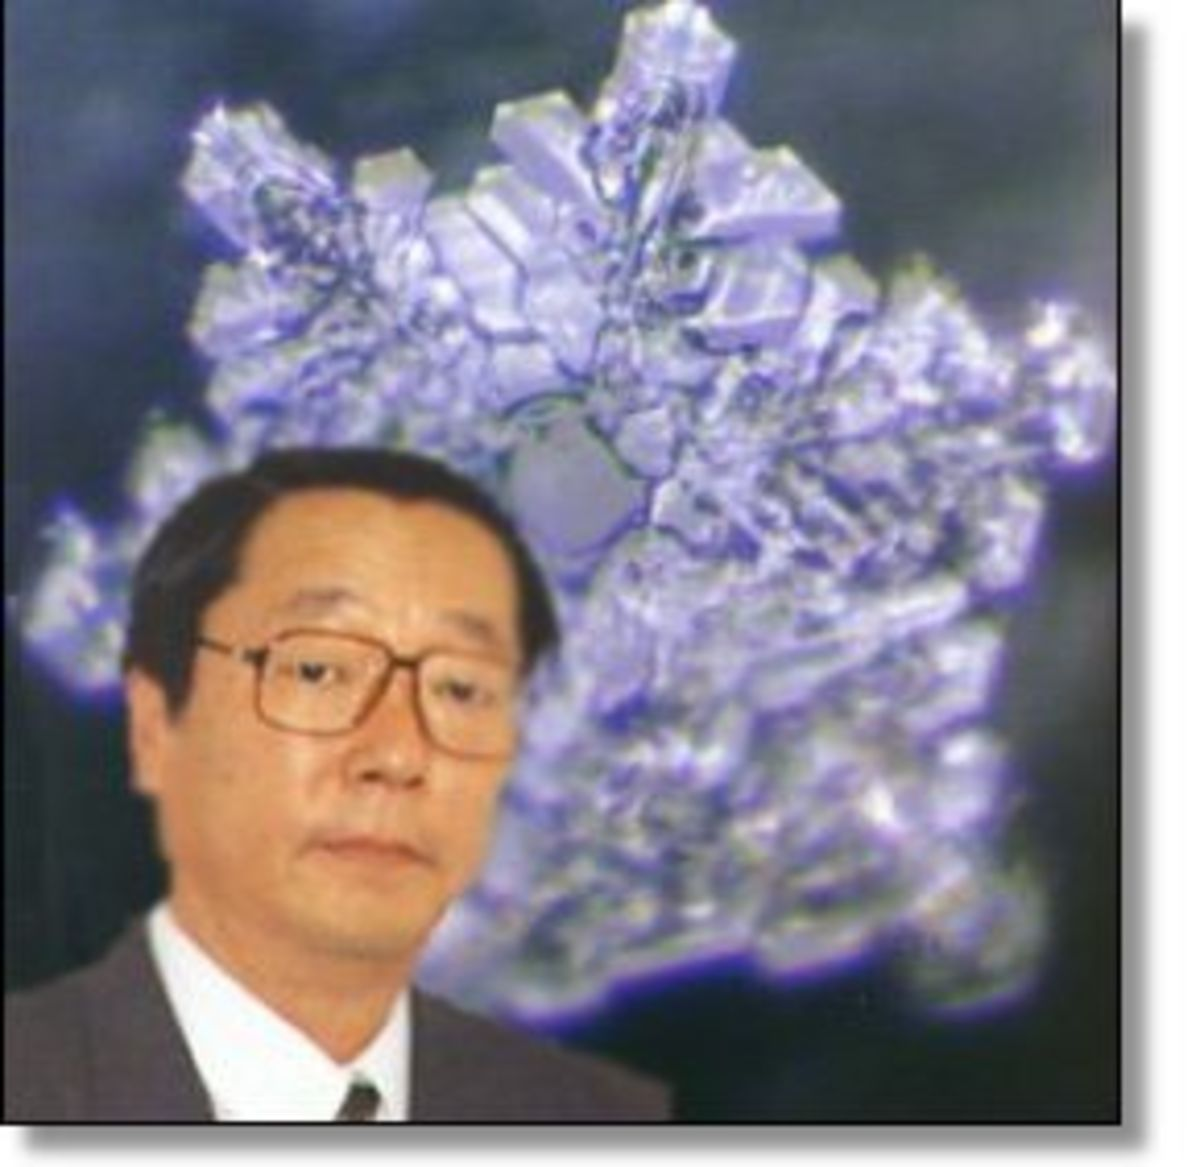 Doctor Masuro Emoto of Japan.   A world renowned scientist.  He studied water for decades.